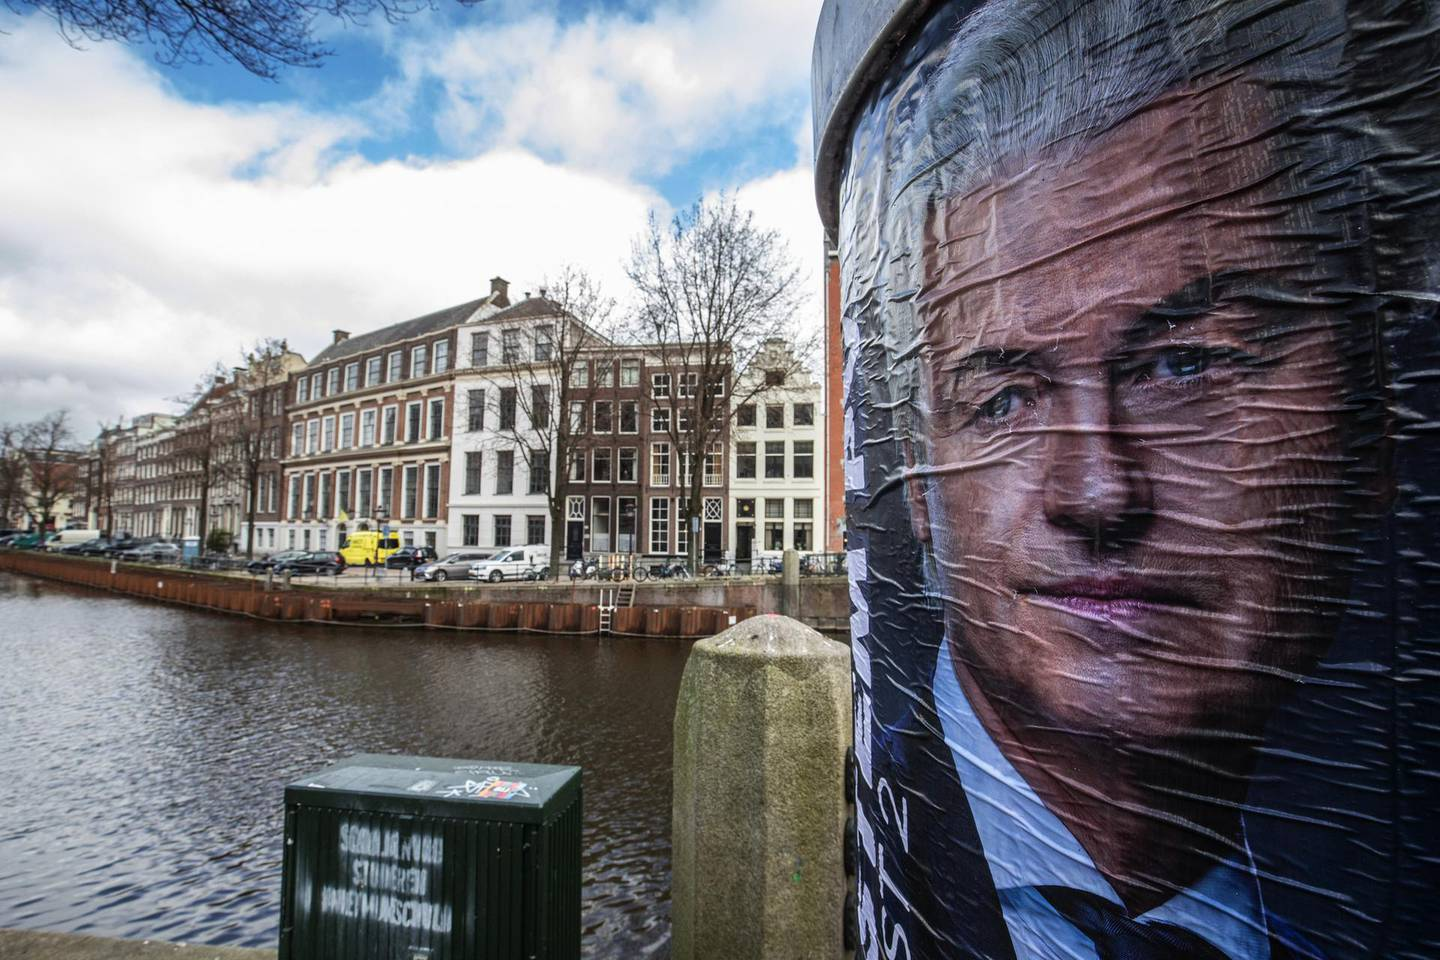 An election campaign poster featuring Geert Wilders, leader of the Party for Freedom (PVV), beside a canal in Amsterdam, Netherlands, on Wednesday, March 17, 2021. Dutch voters go to the polls on Wednesday with Prime MinisterMark Ruttelooking to clinch a fourth consecutive term, a result that would set himup tobecome the country's longest-serving premier and a senior statesman in Europe. Photographer: Peter Boer/Bloomberg